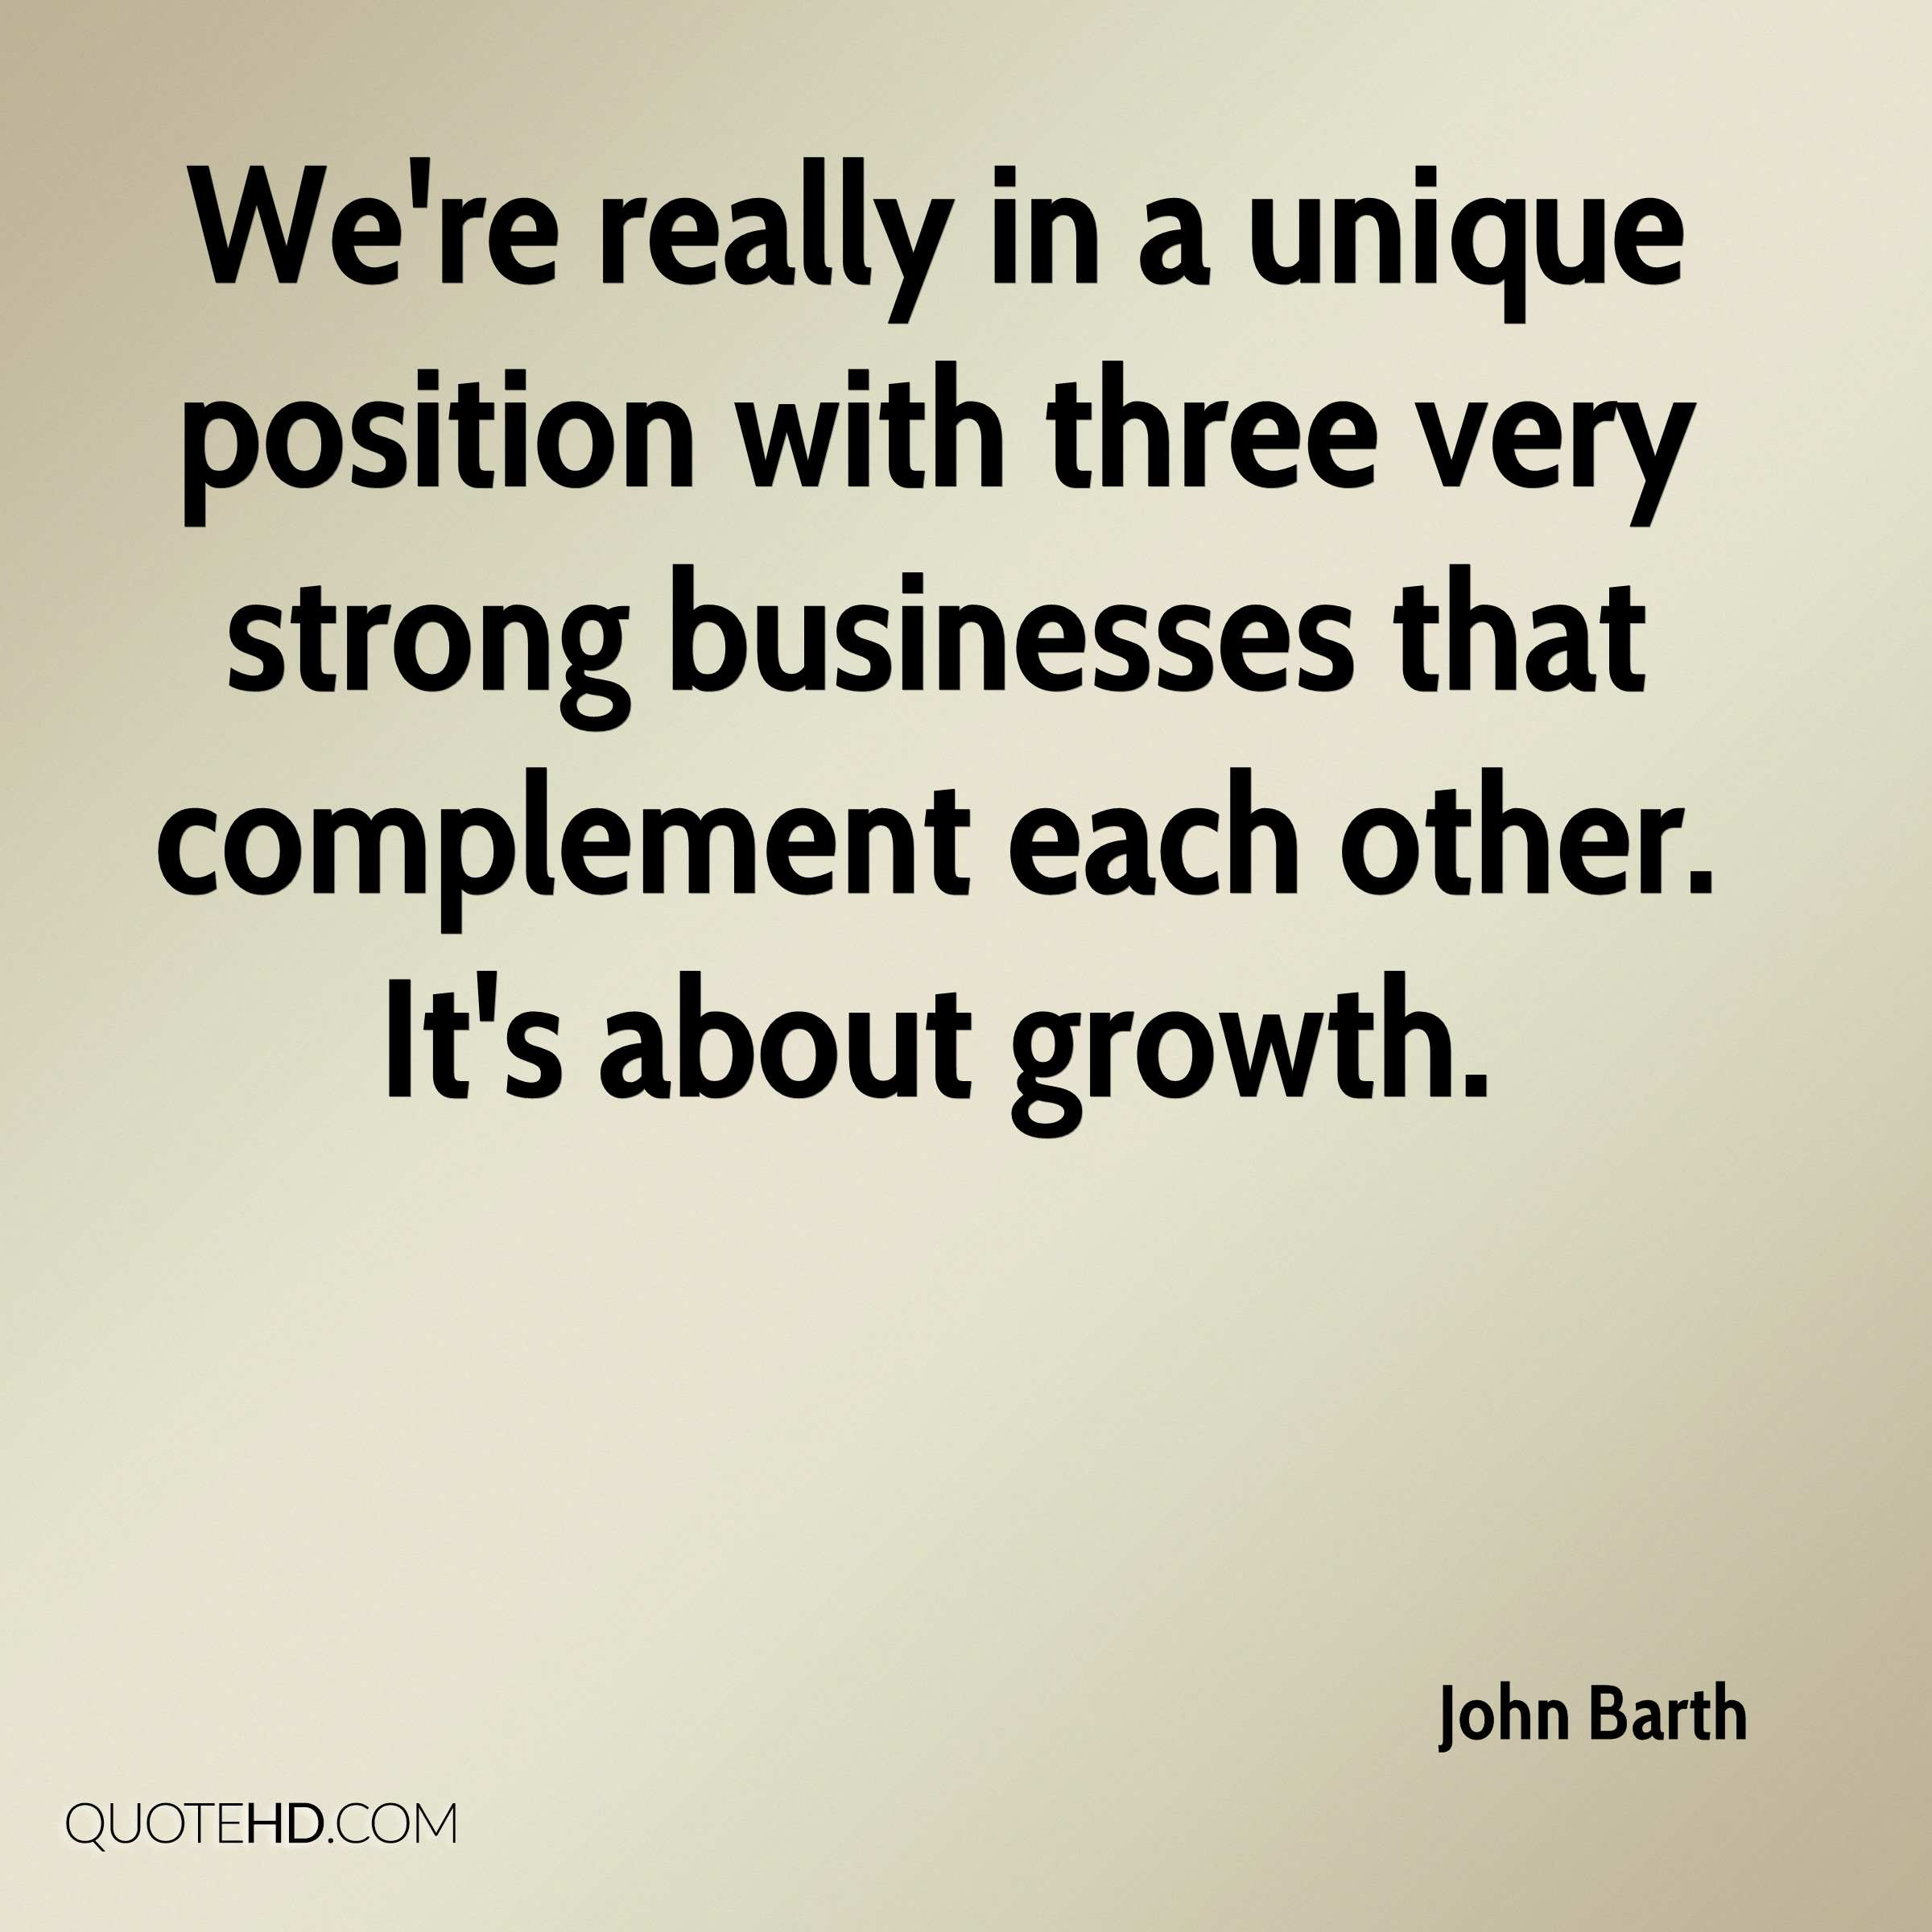 We're really in a unique position with three very strong businesses that complement each other. It's about growth.